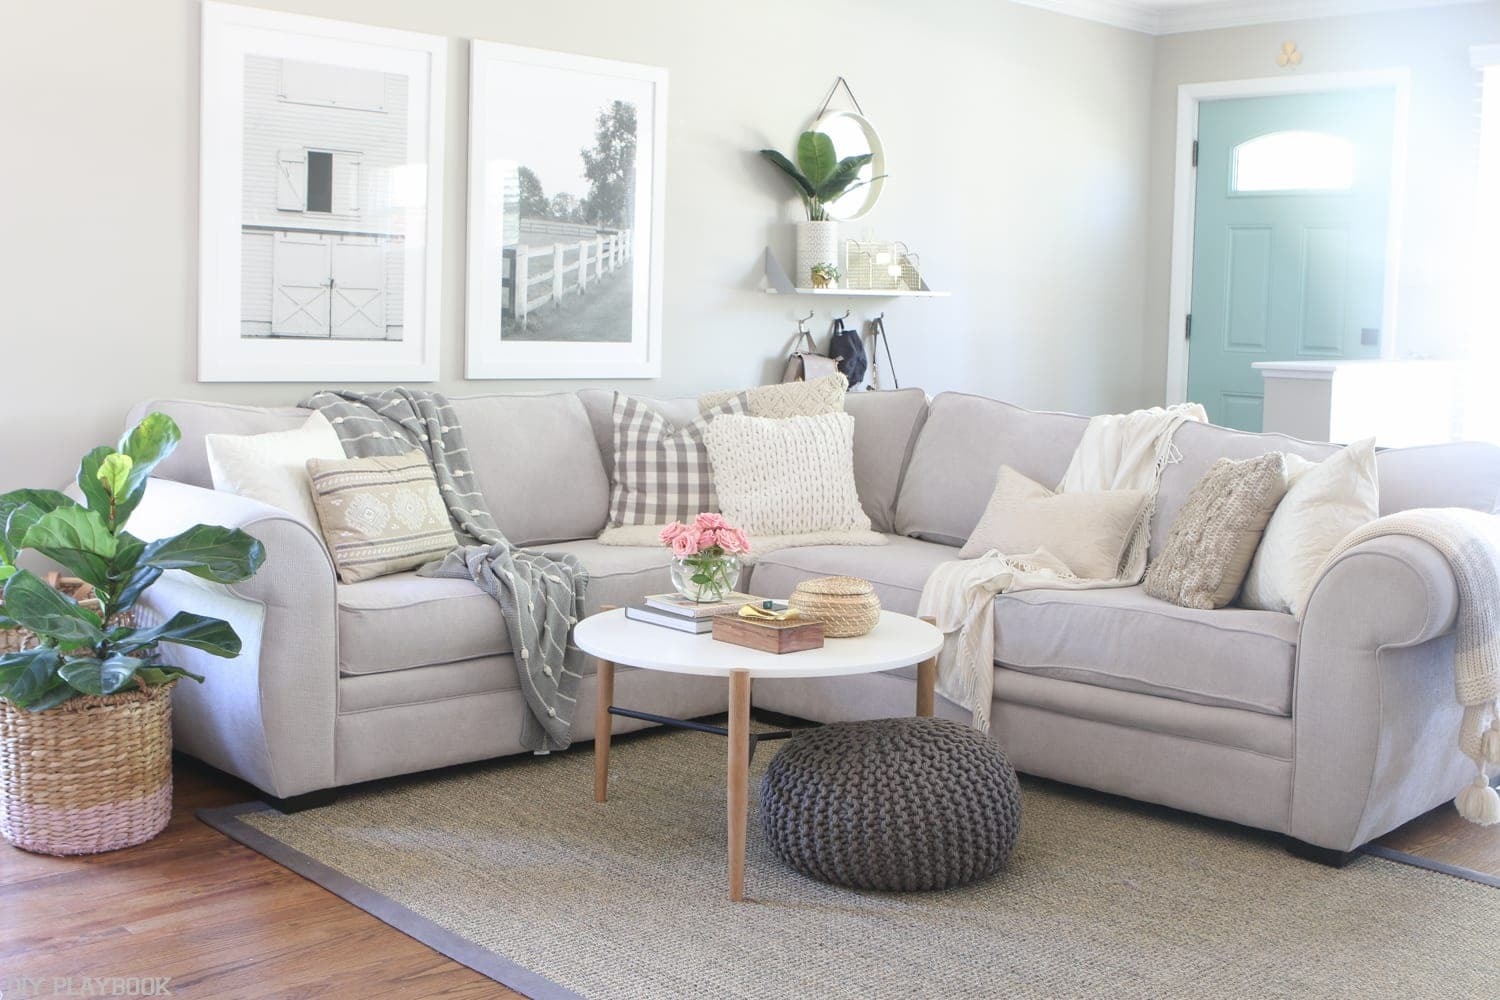 A gray sectional from Macy's warms up this neutral living room space.